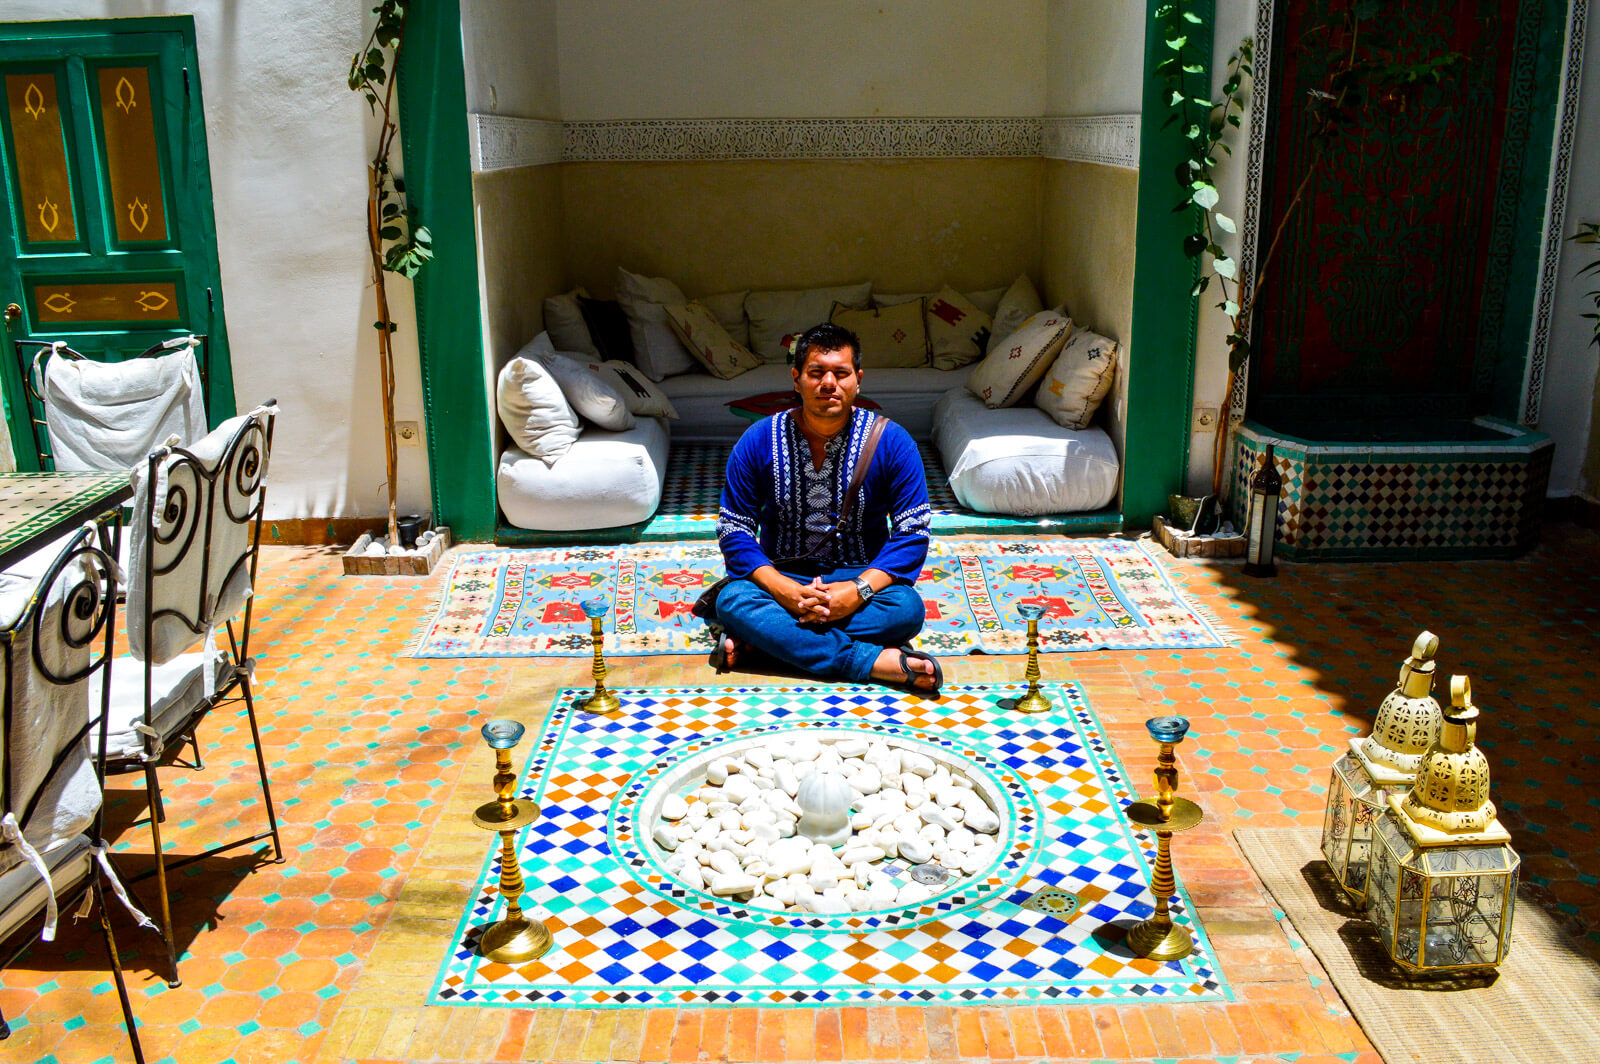 The Man of Wonders at the Riads of Marrakesh